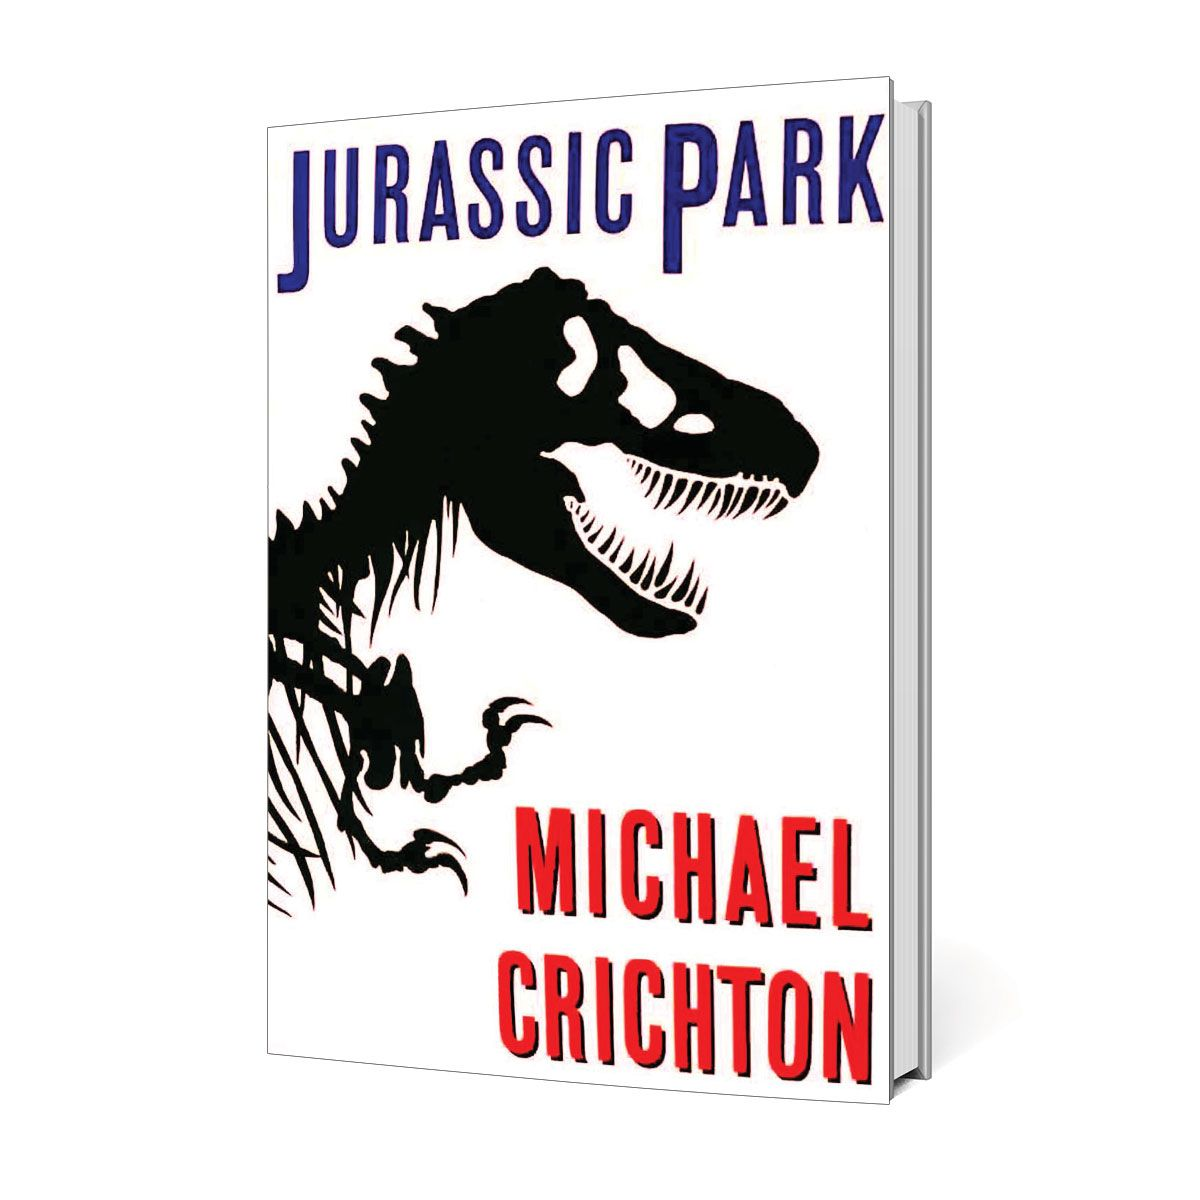 an analysis of dinosaur cloning in jurassic park by michael crichton Jurassic park is a novel written by michael crichton, the best-selling author of various other books, such as the andromeda strain jurassic park was released in november 1990 in the spring of 1990, an earlier draft of the novel was given to steven spielberg.